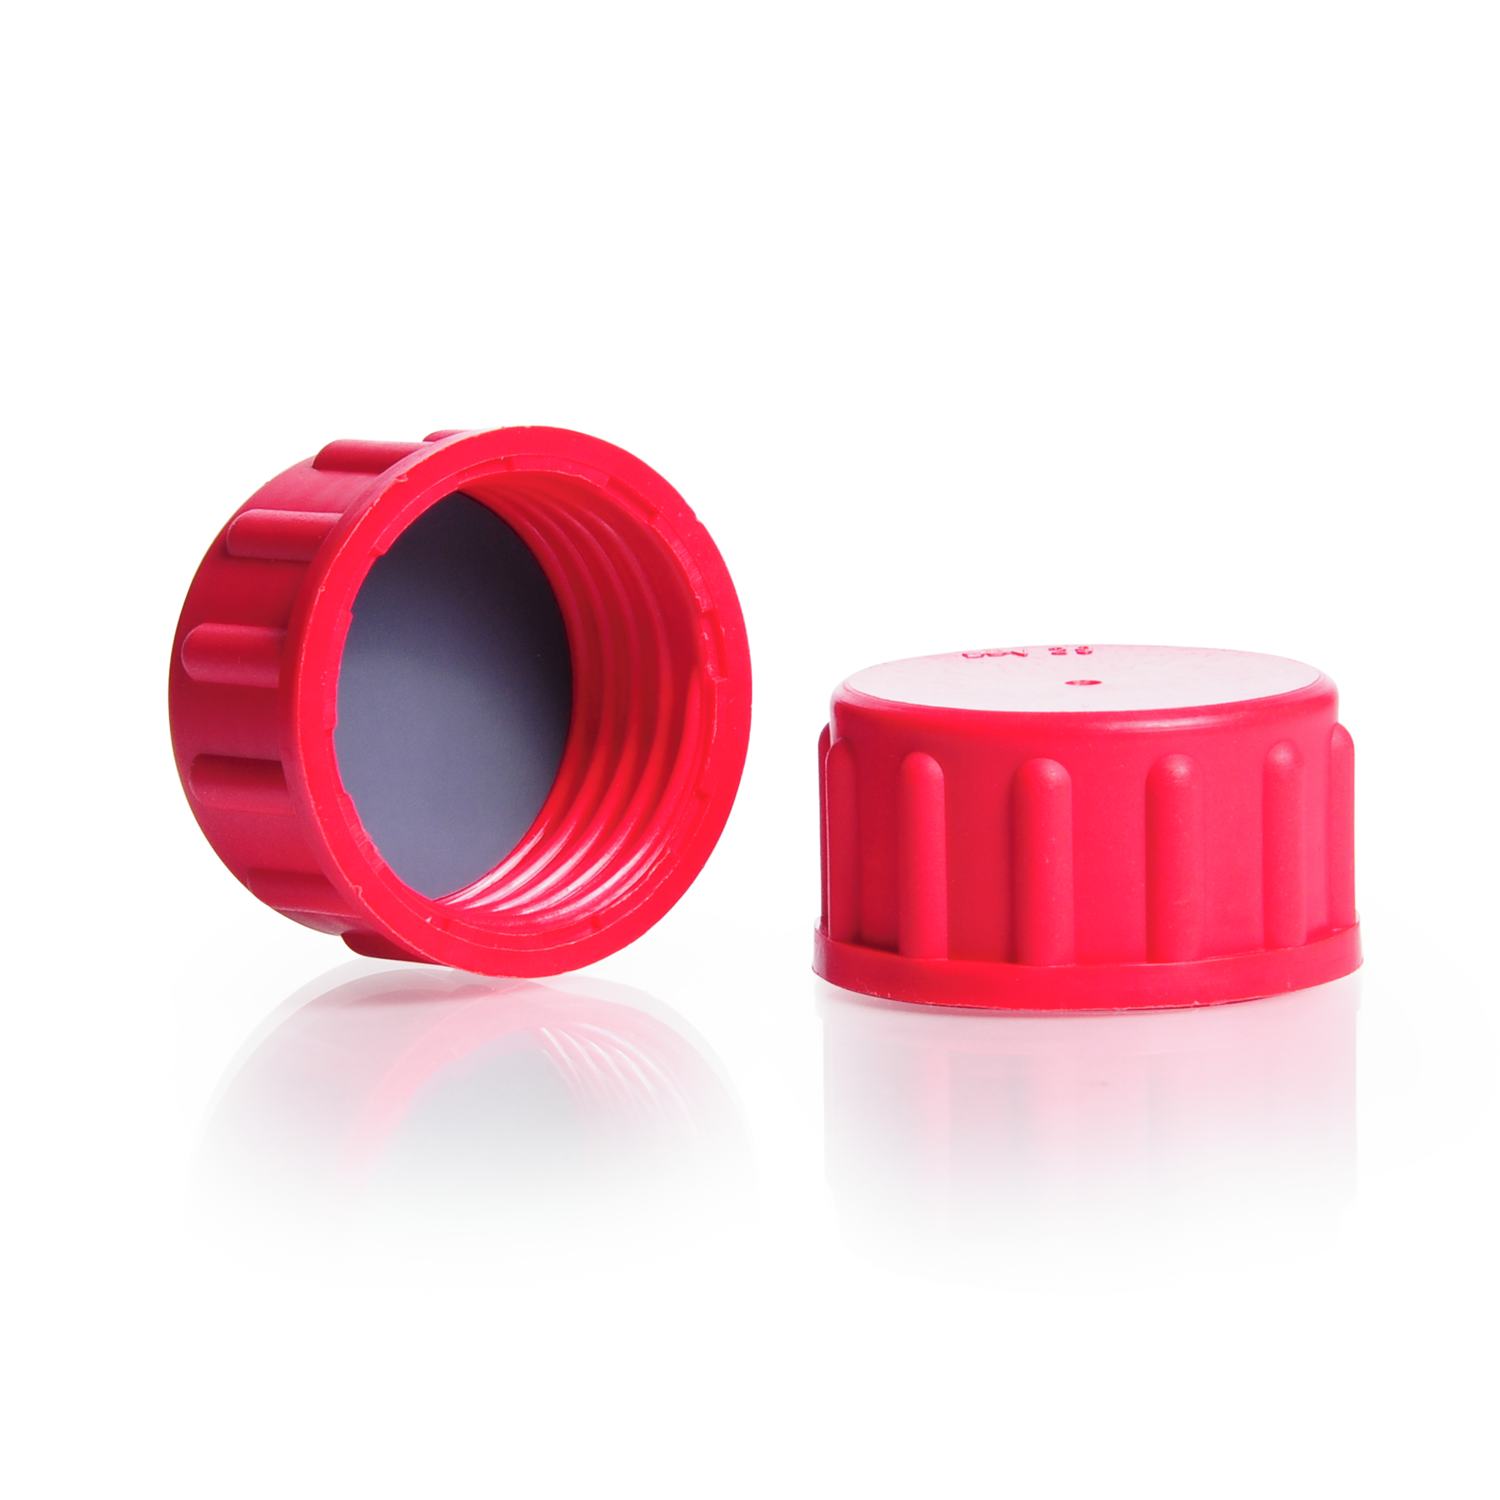 Screw Cap for DURAN® Safety Joints, NS 34